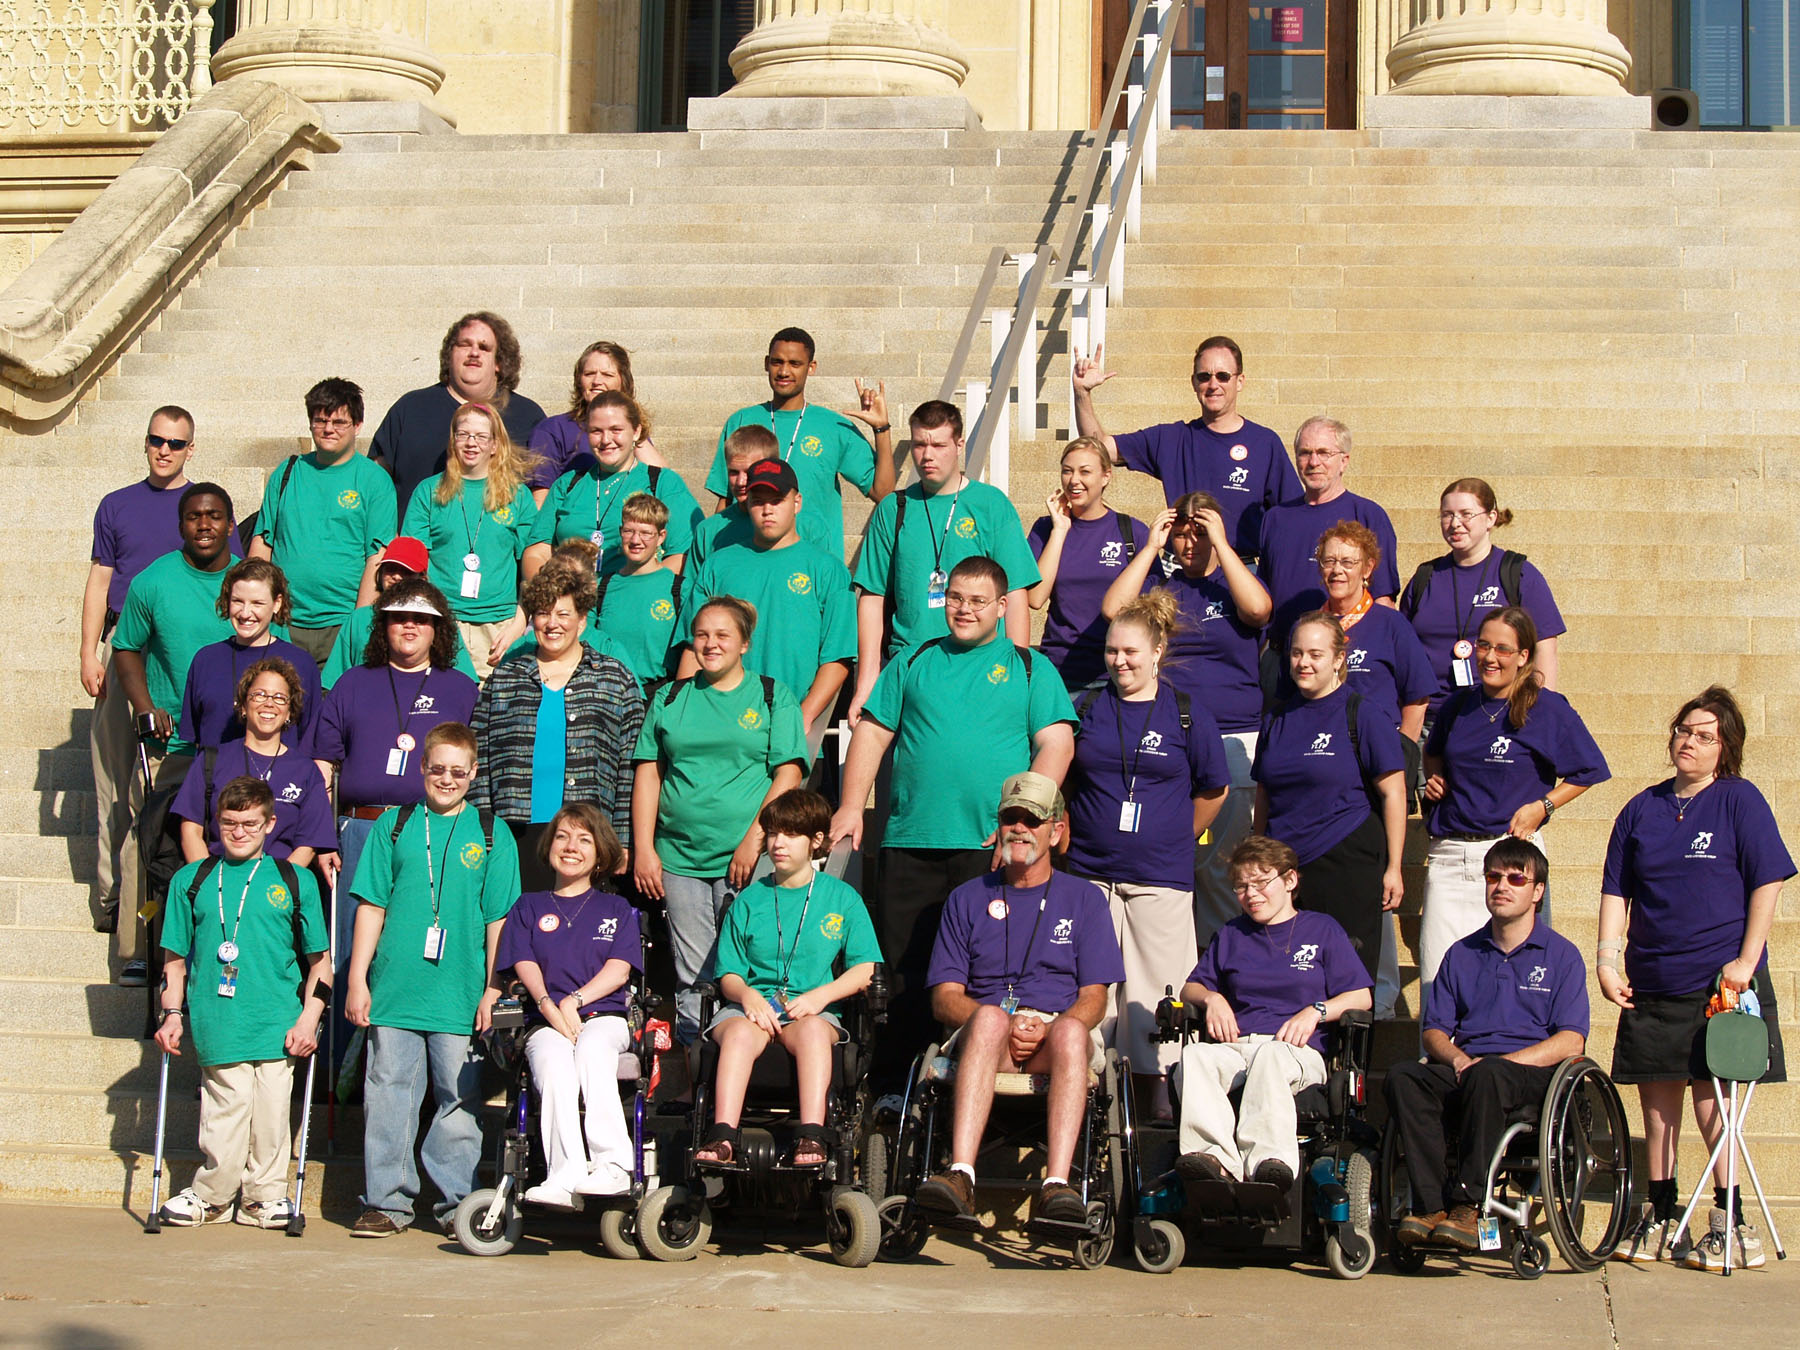 2006 KSYLF participants pose on the Capital steps